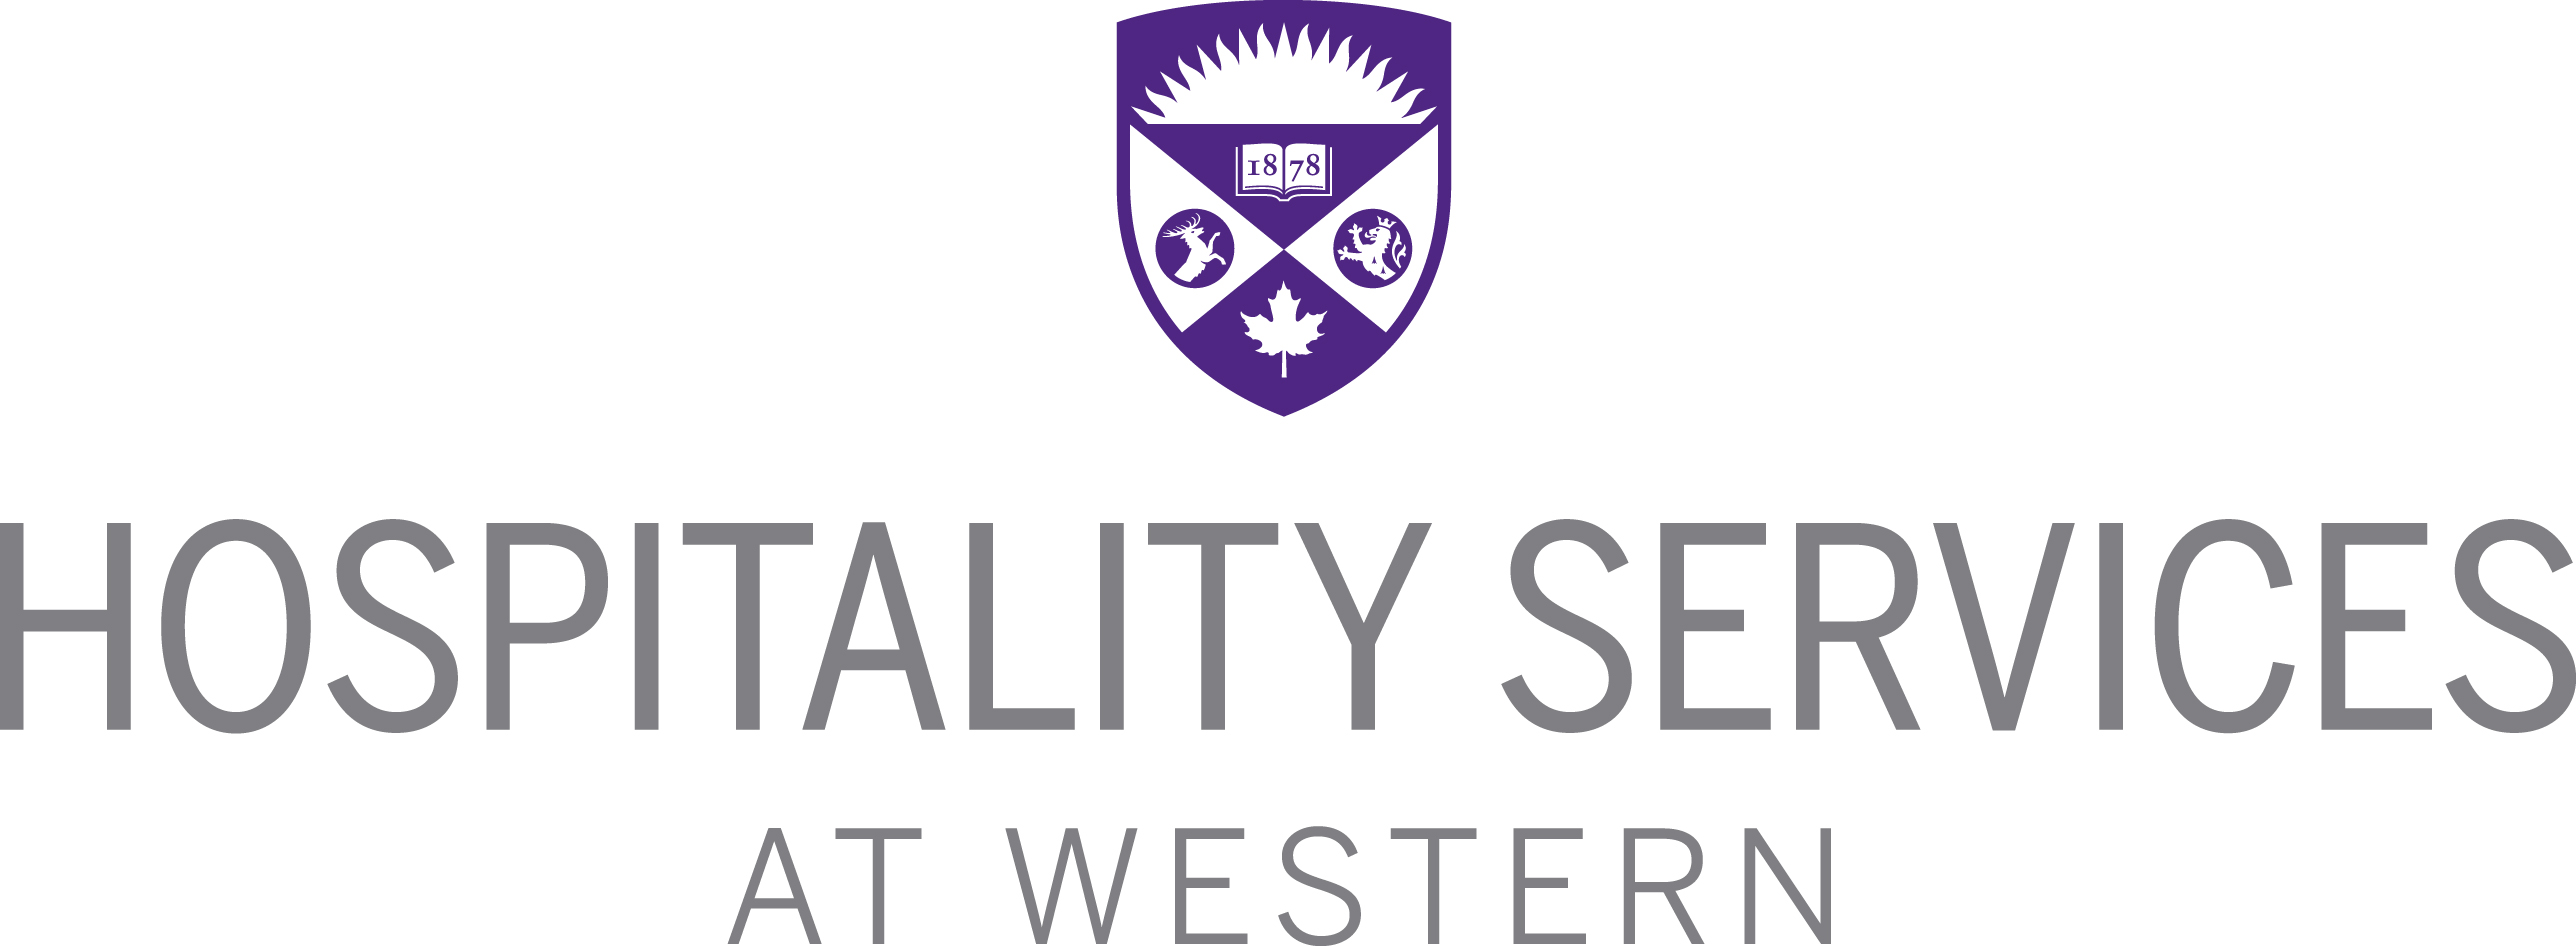 Hospitality Services at Western